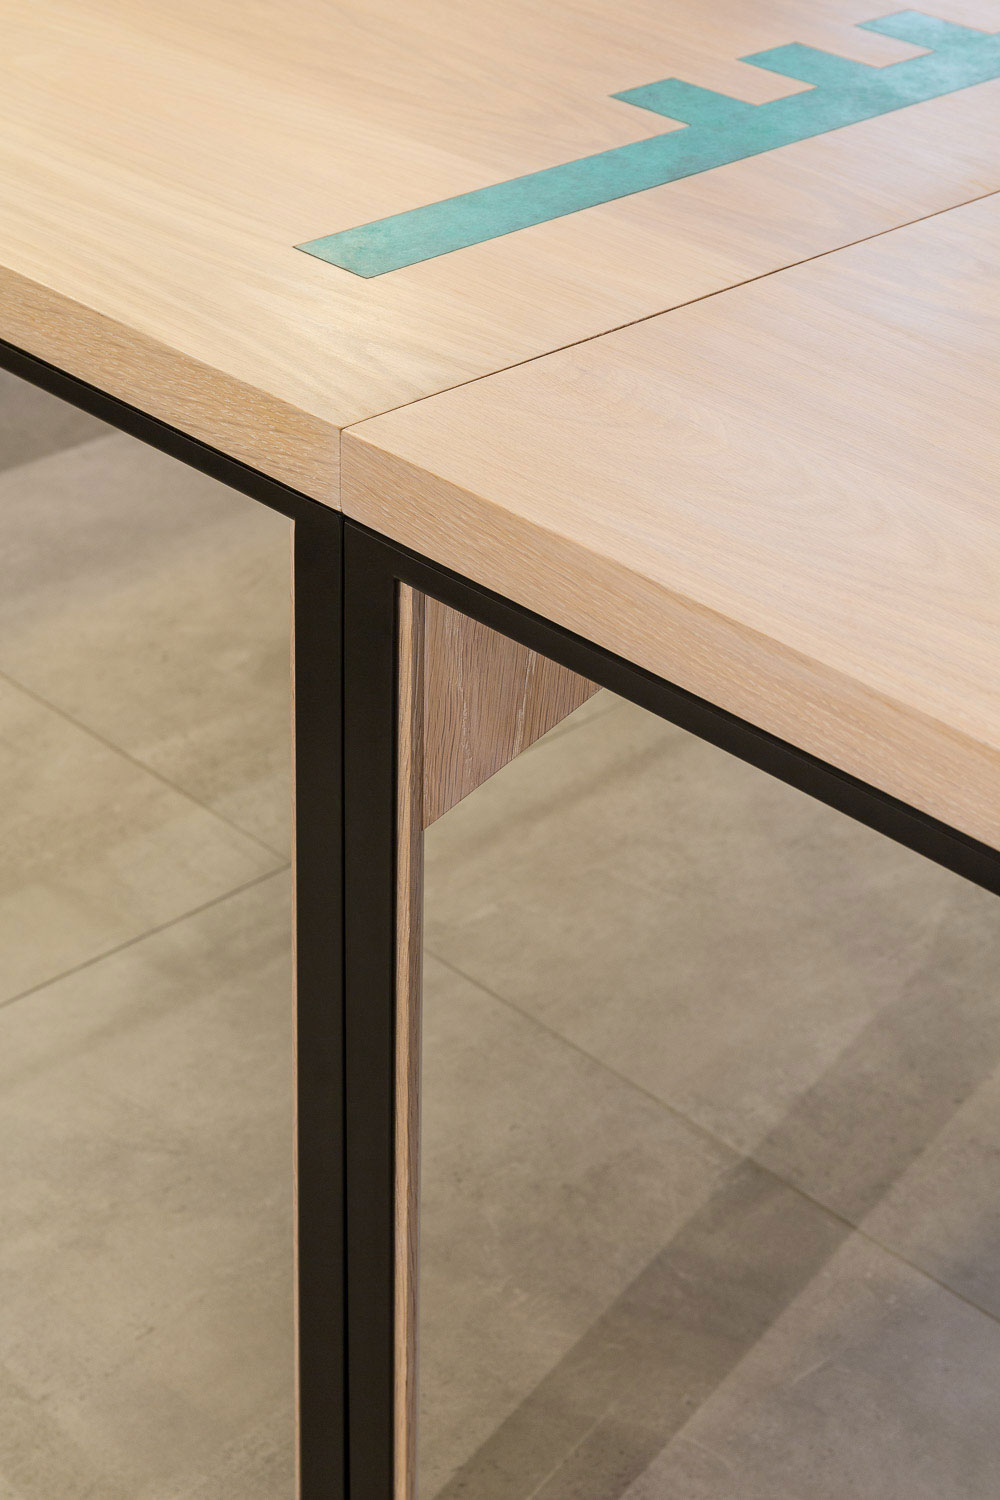 Architecture-London-Design-Freehaus-Puzzle-Table-5.jpg